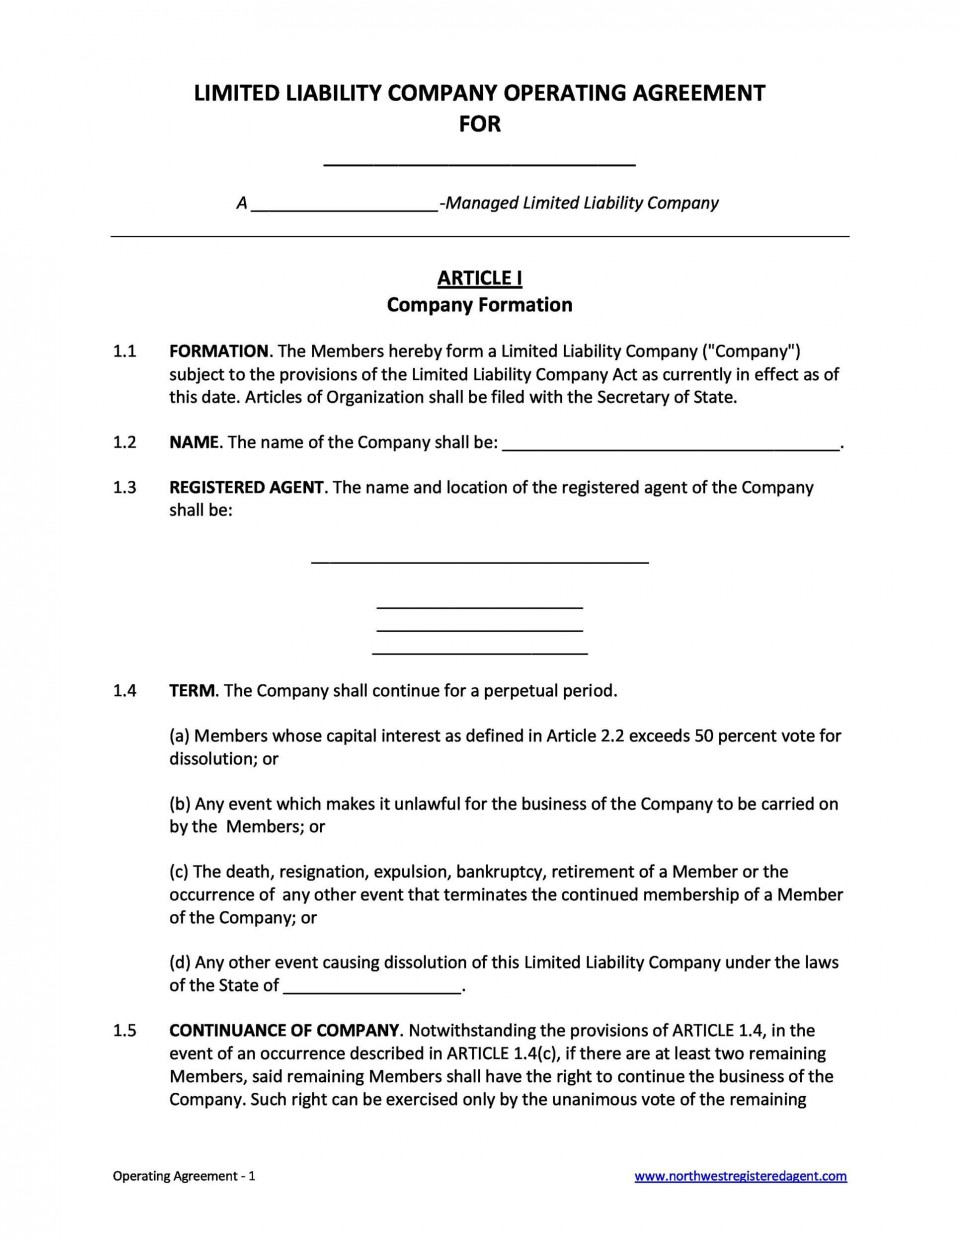 006 Remarkable Operation Agreement Llc Template Concept  Operating Florida Indiana Single Member California960